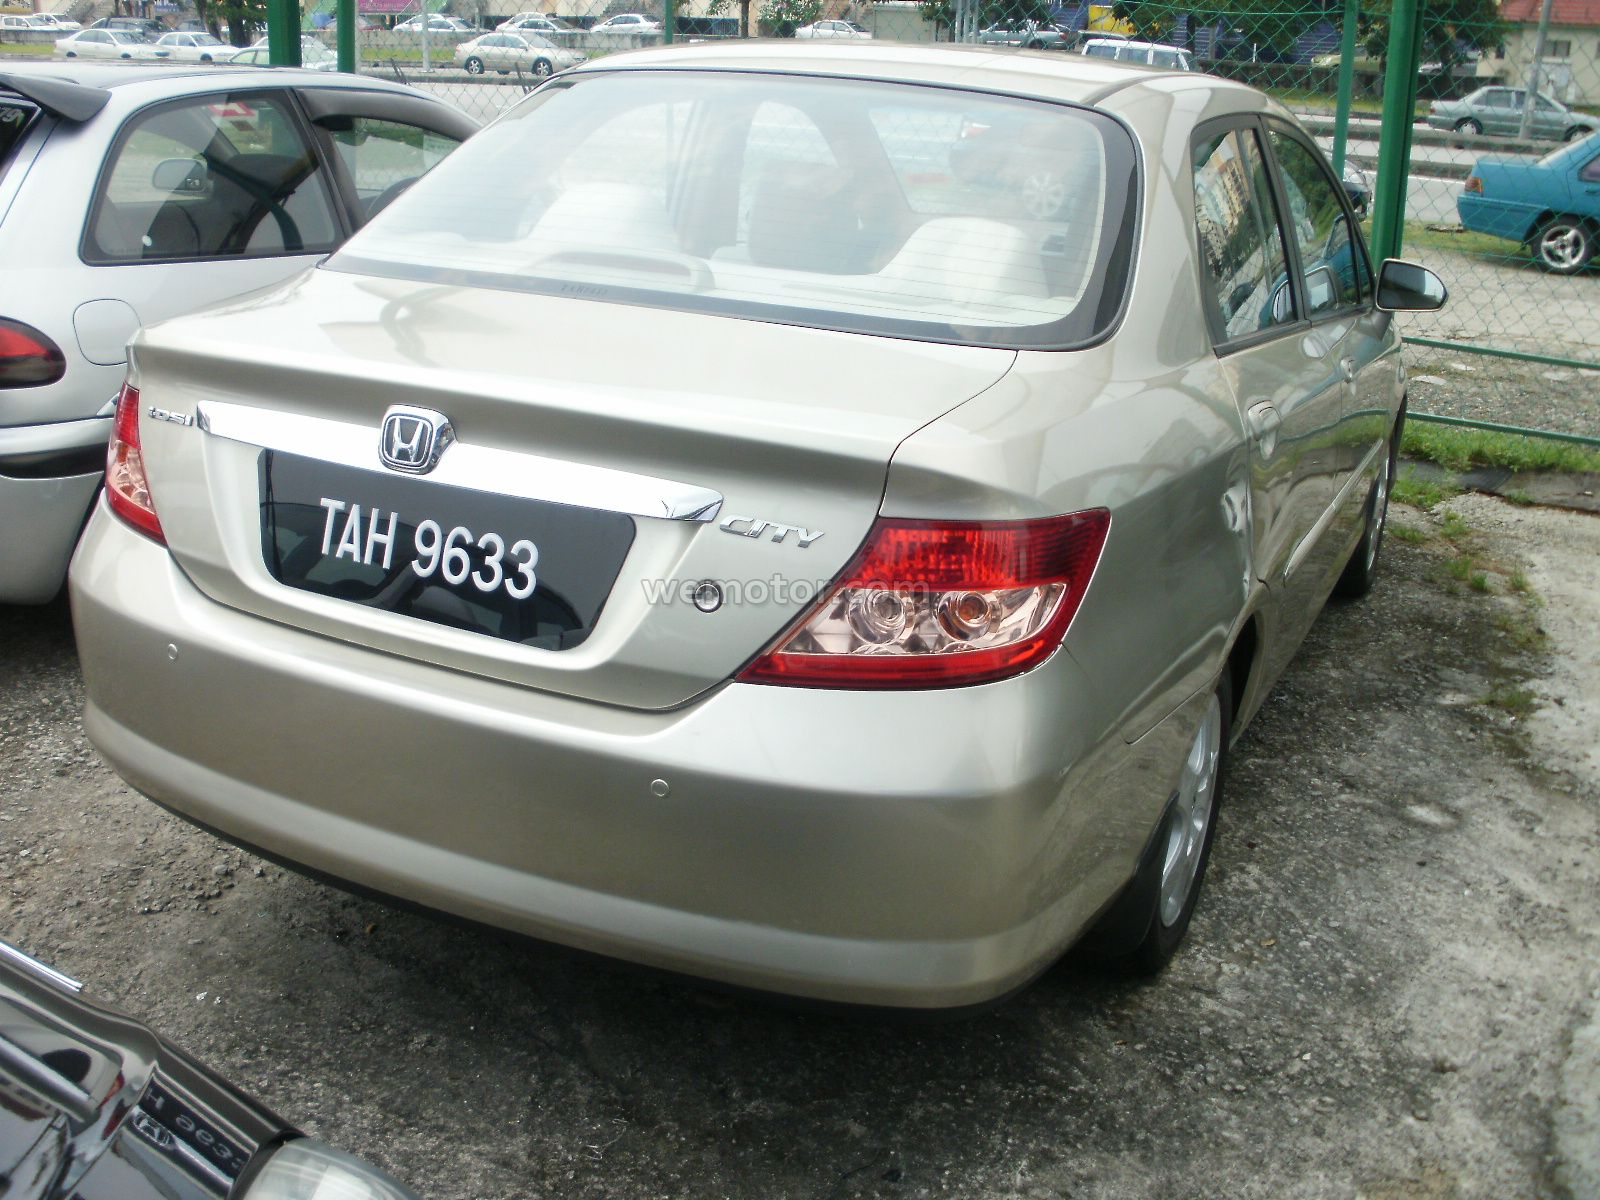 2005 Honda City zx sedan - pictures, information and specs ...